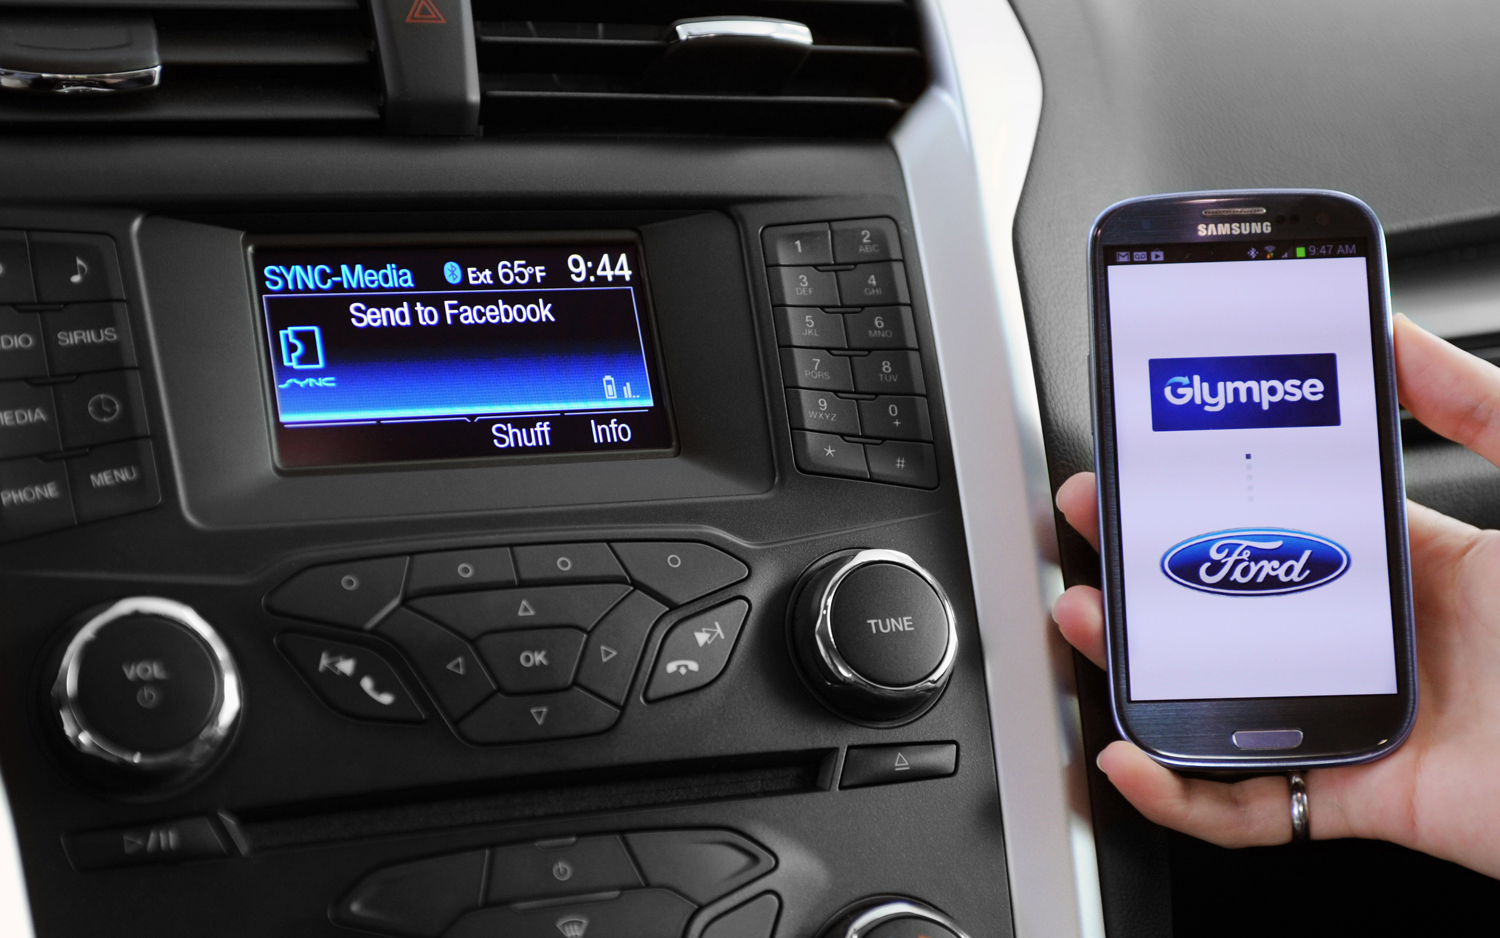 Ford Sync - Pierre Legeay